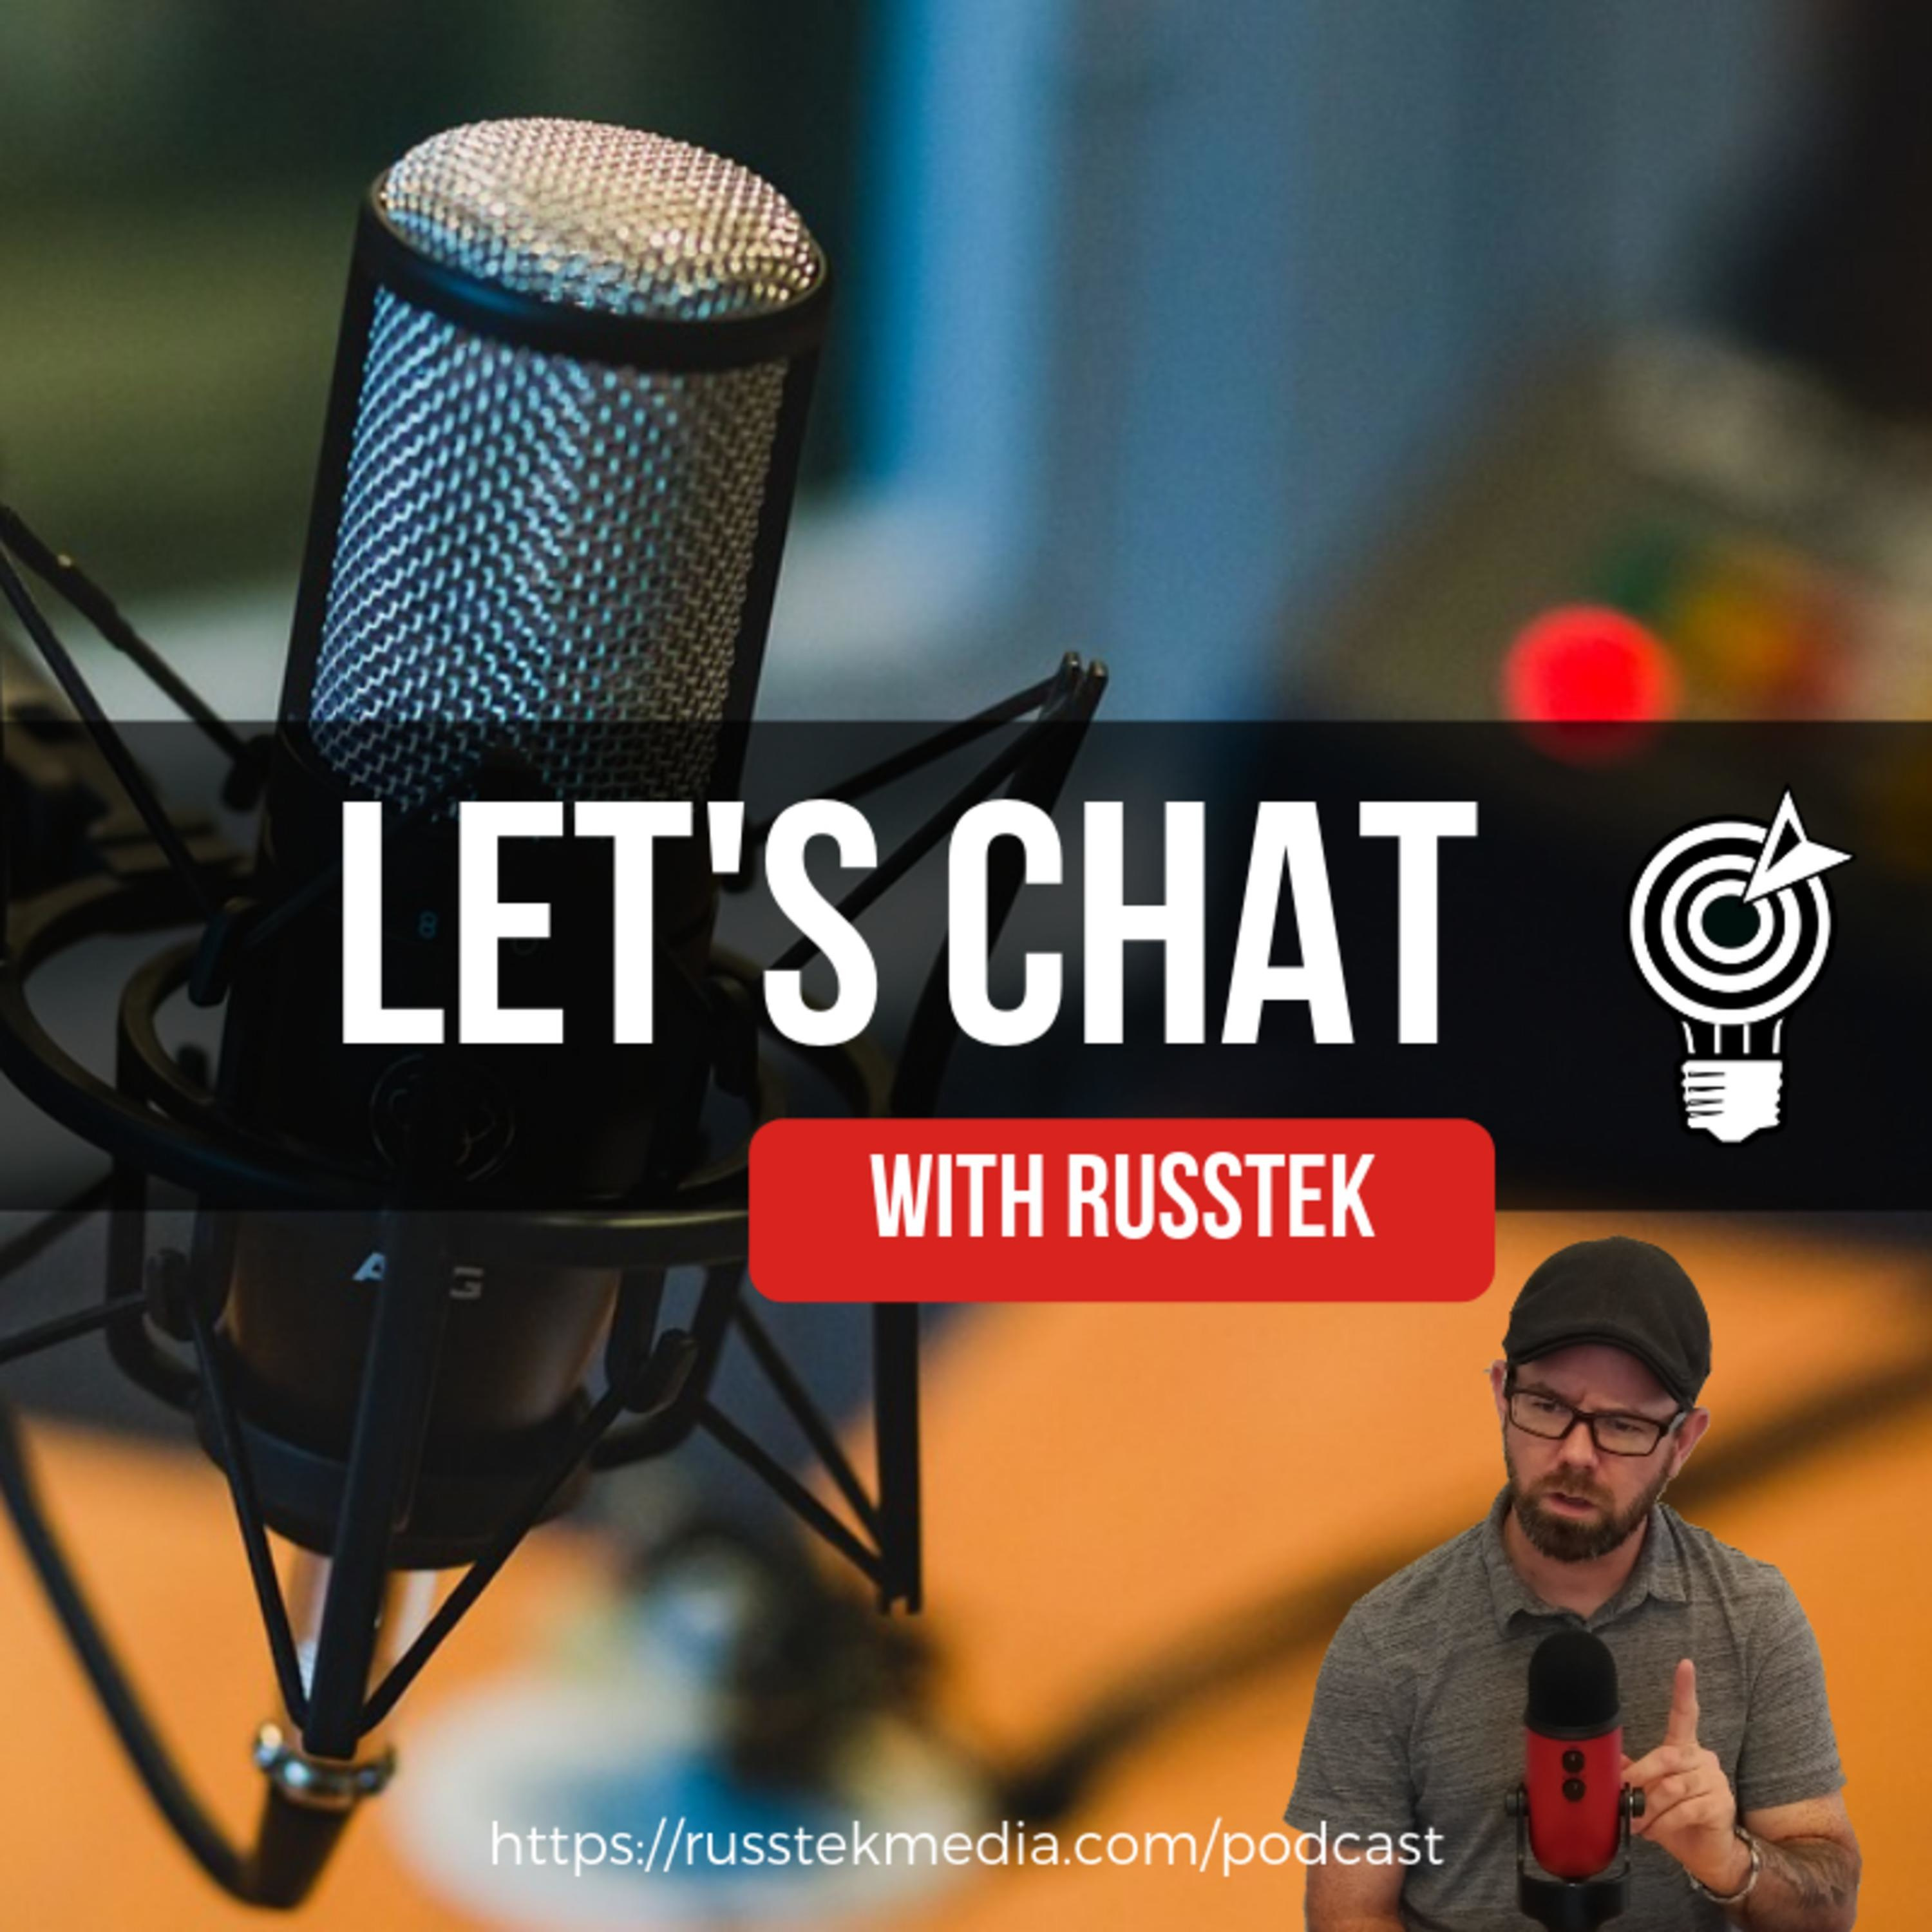 Let's Chat with Russtek Episode 28